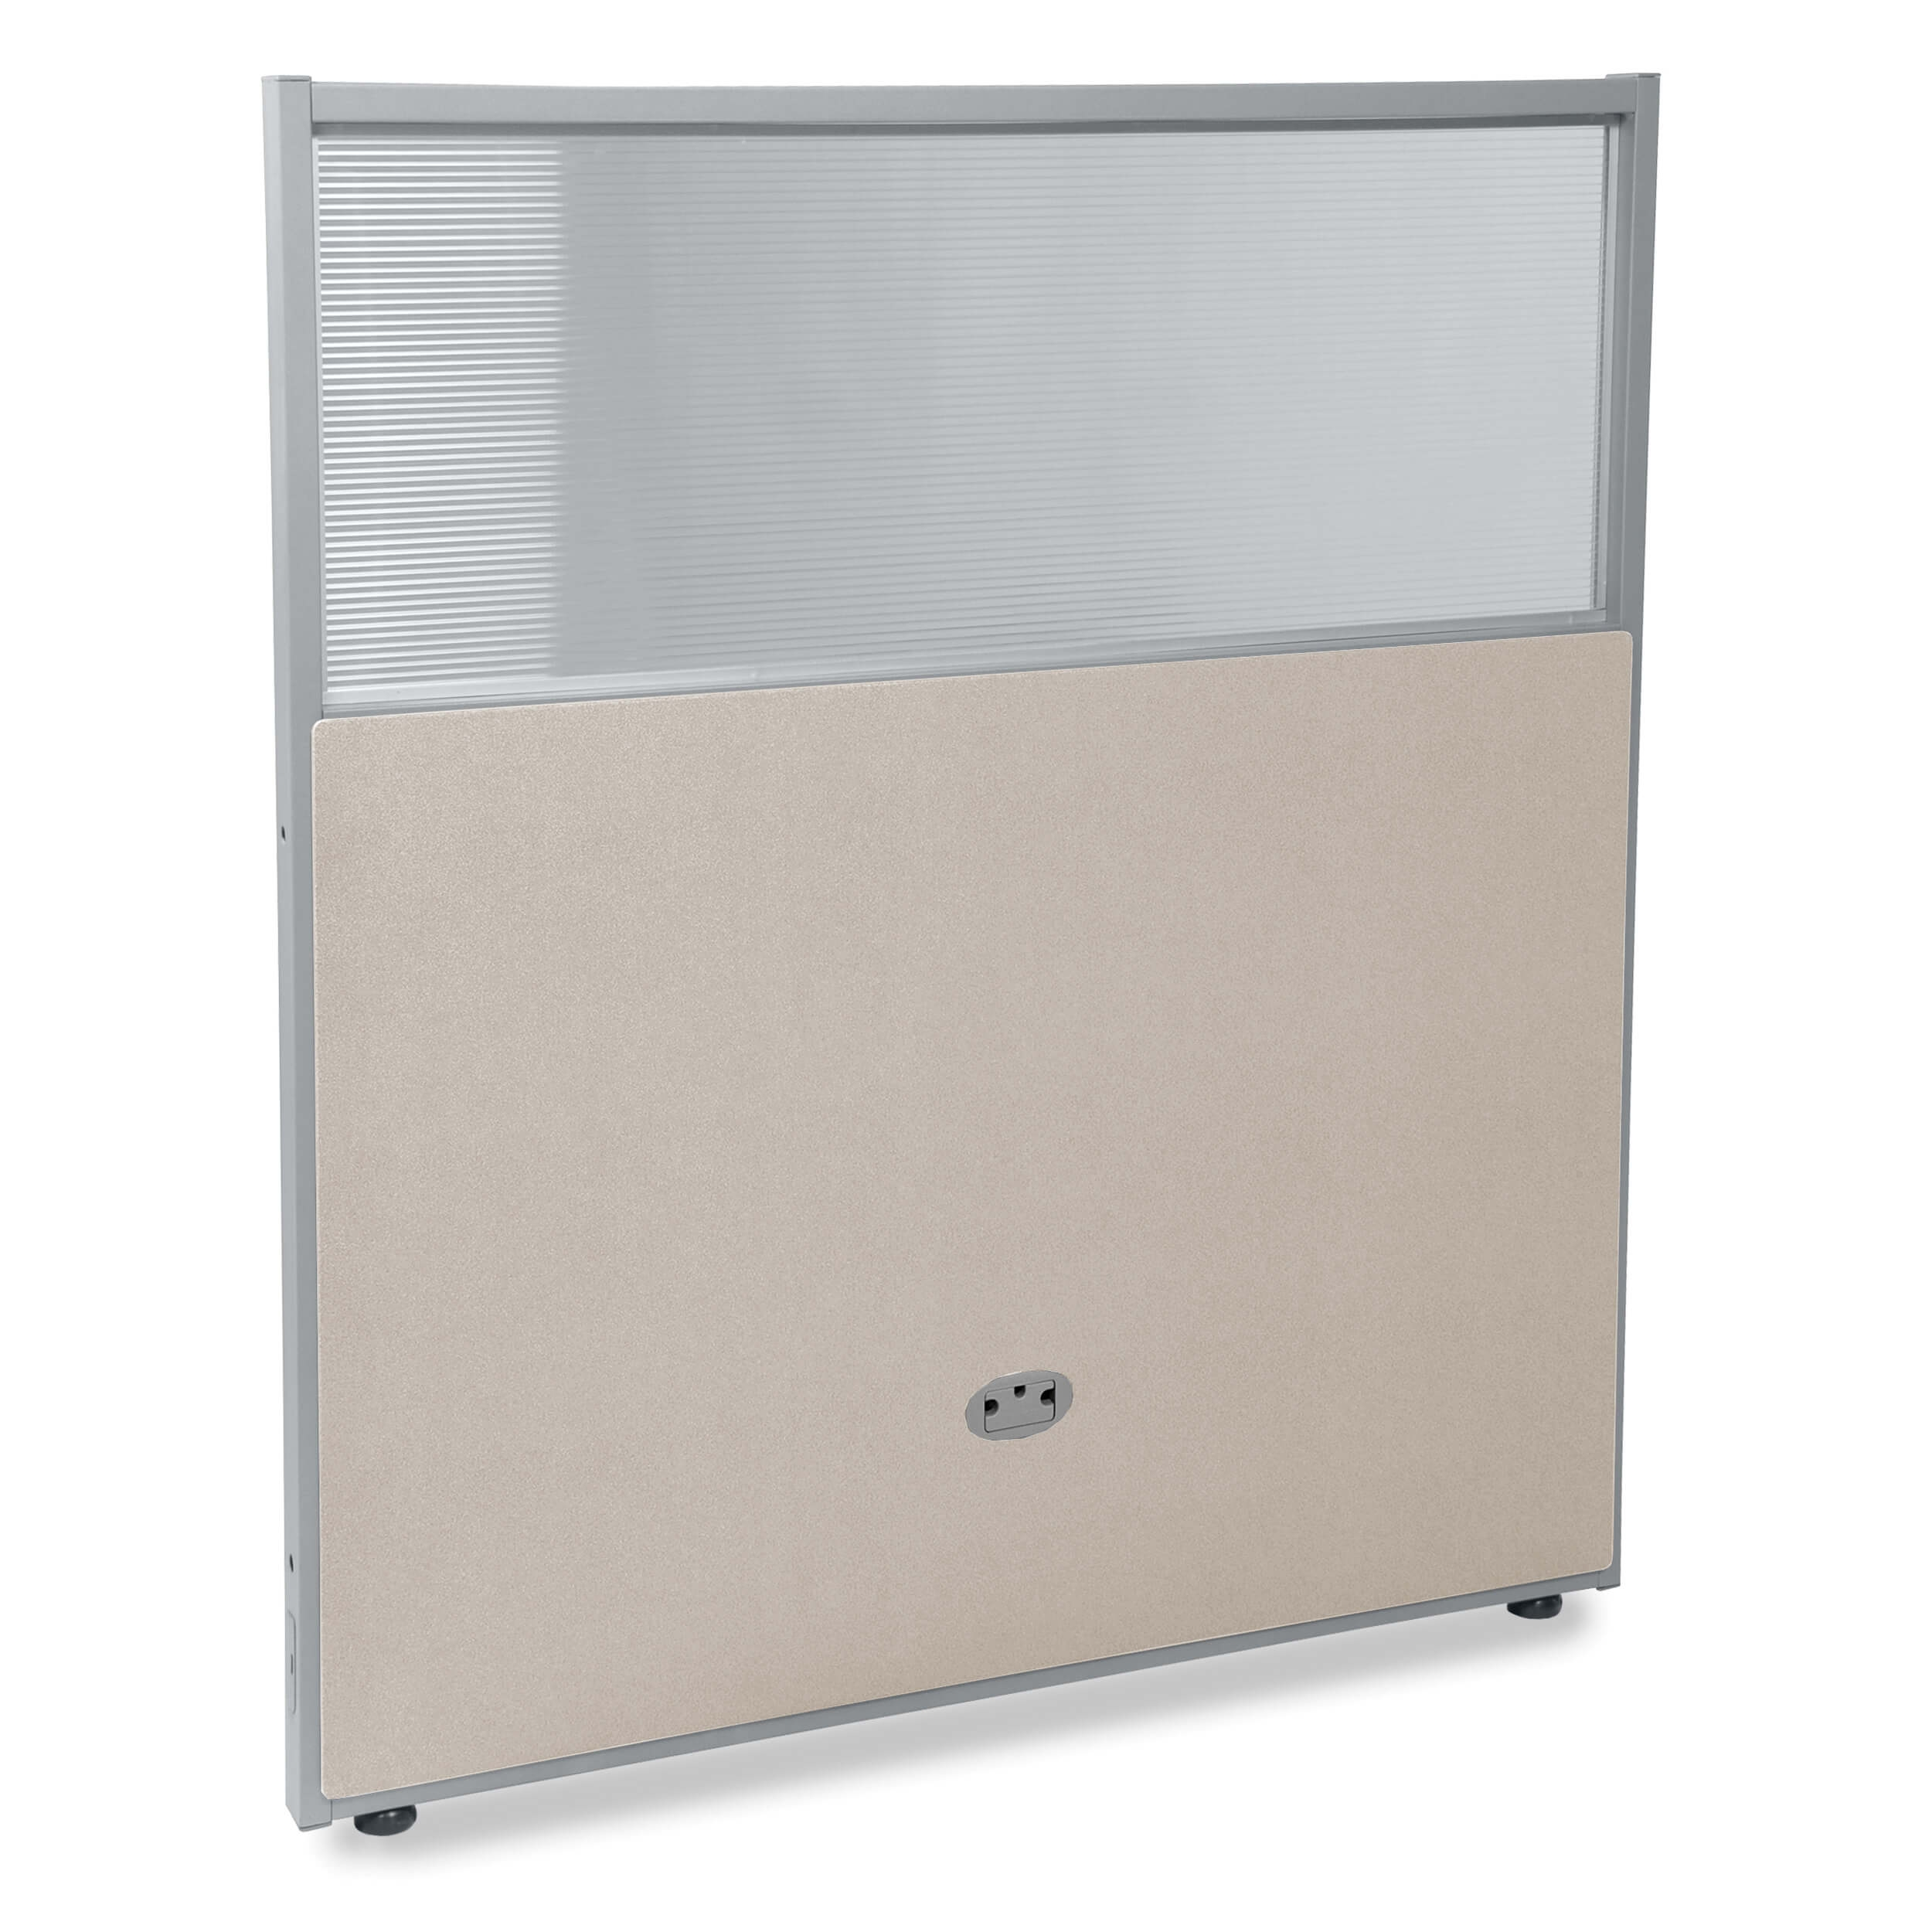 privacy-panels-office-partition-panels.jpg